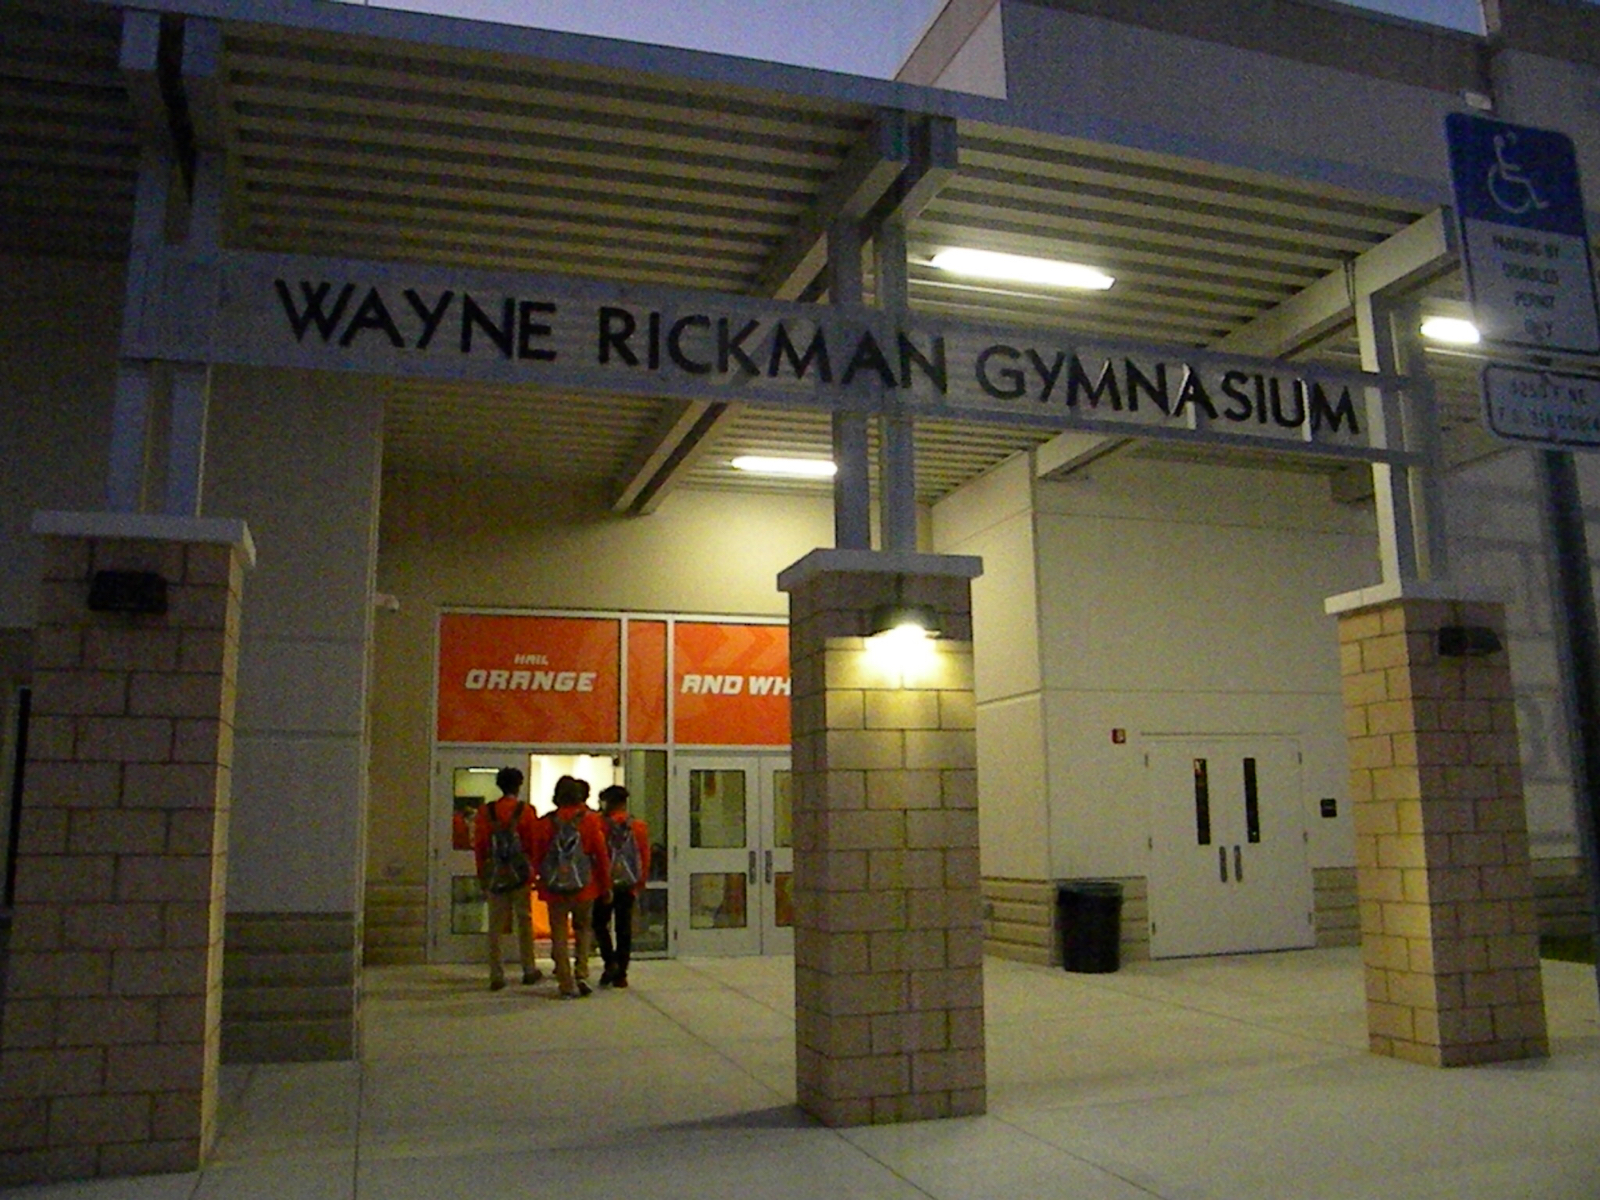 Tradition Continues With the New Wayne Rickman Gymnasium